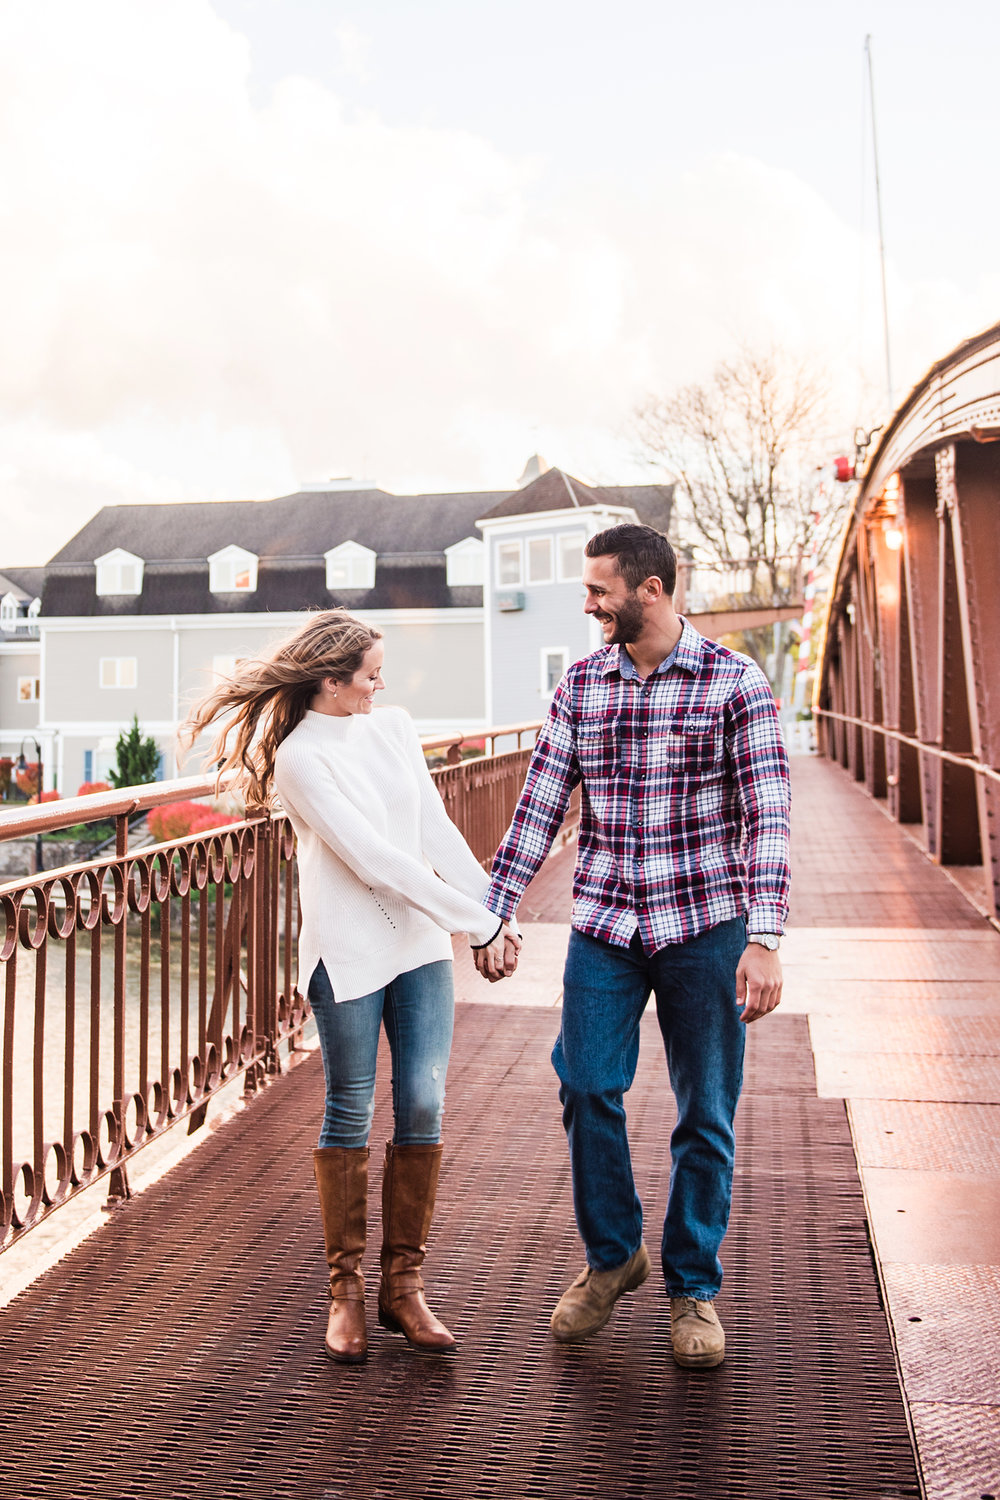 Village_of_Fairport_Rochester_Engagement_Session_JILL_STUDIO_Rochester_NY_Photographer_DSC_8797.jpg